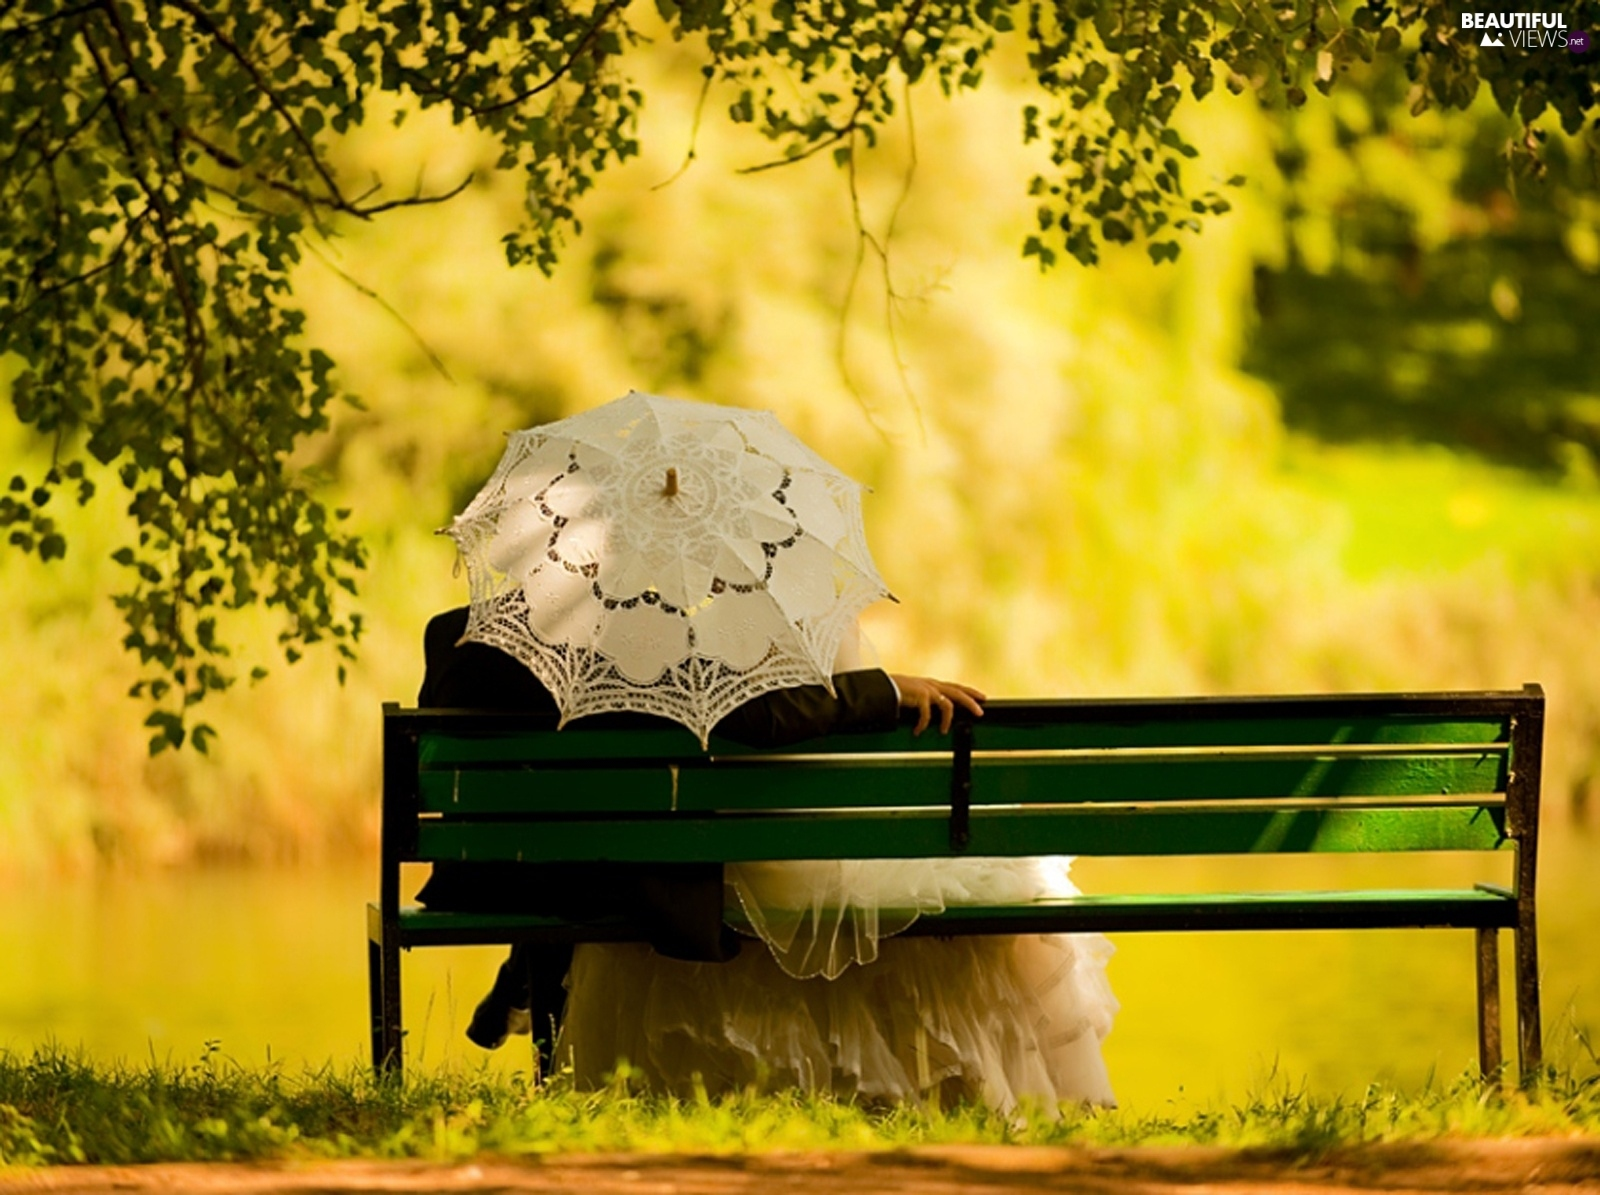 Park, Steam, lovers, Bench